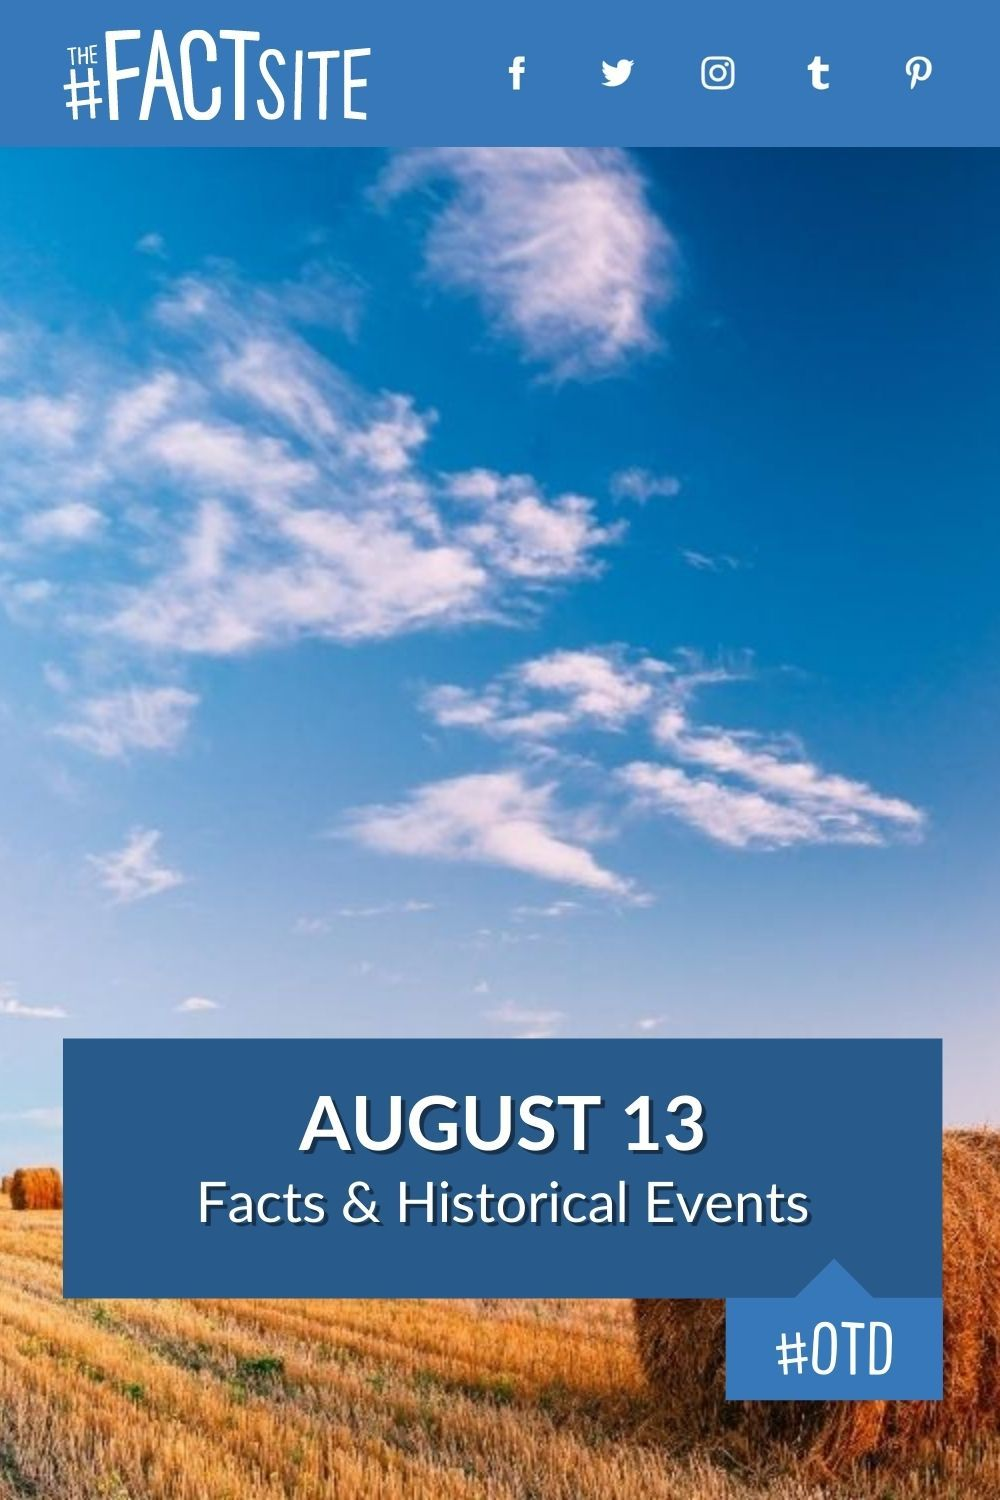 Facts & Historic Events That Happened on August 13